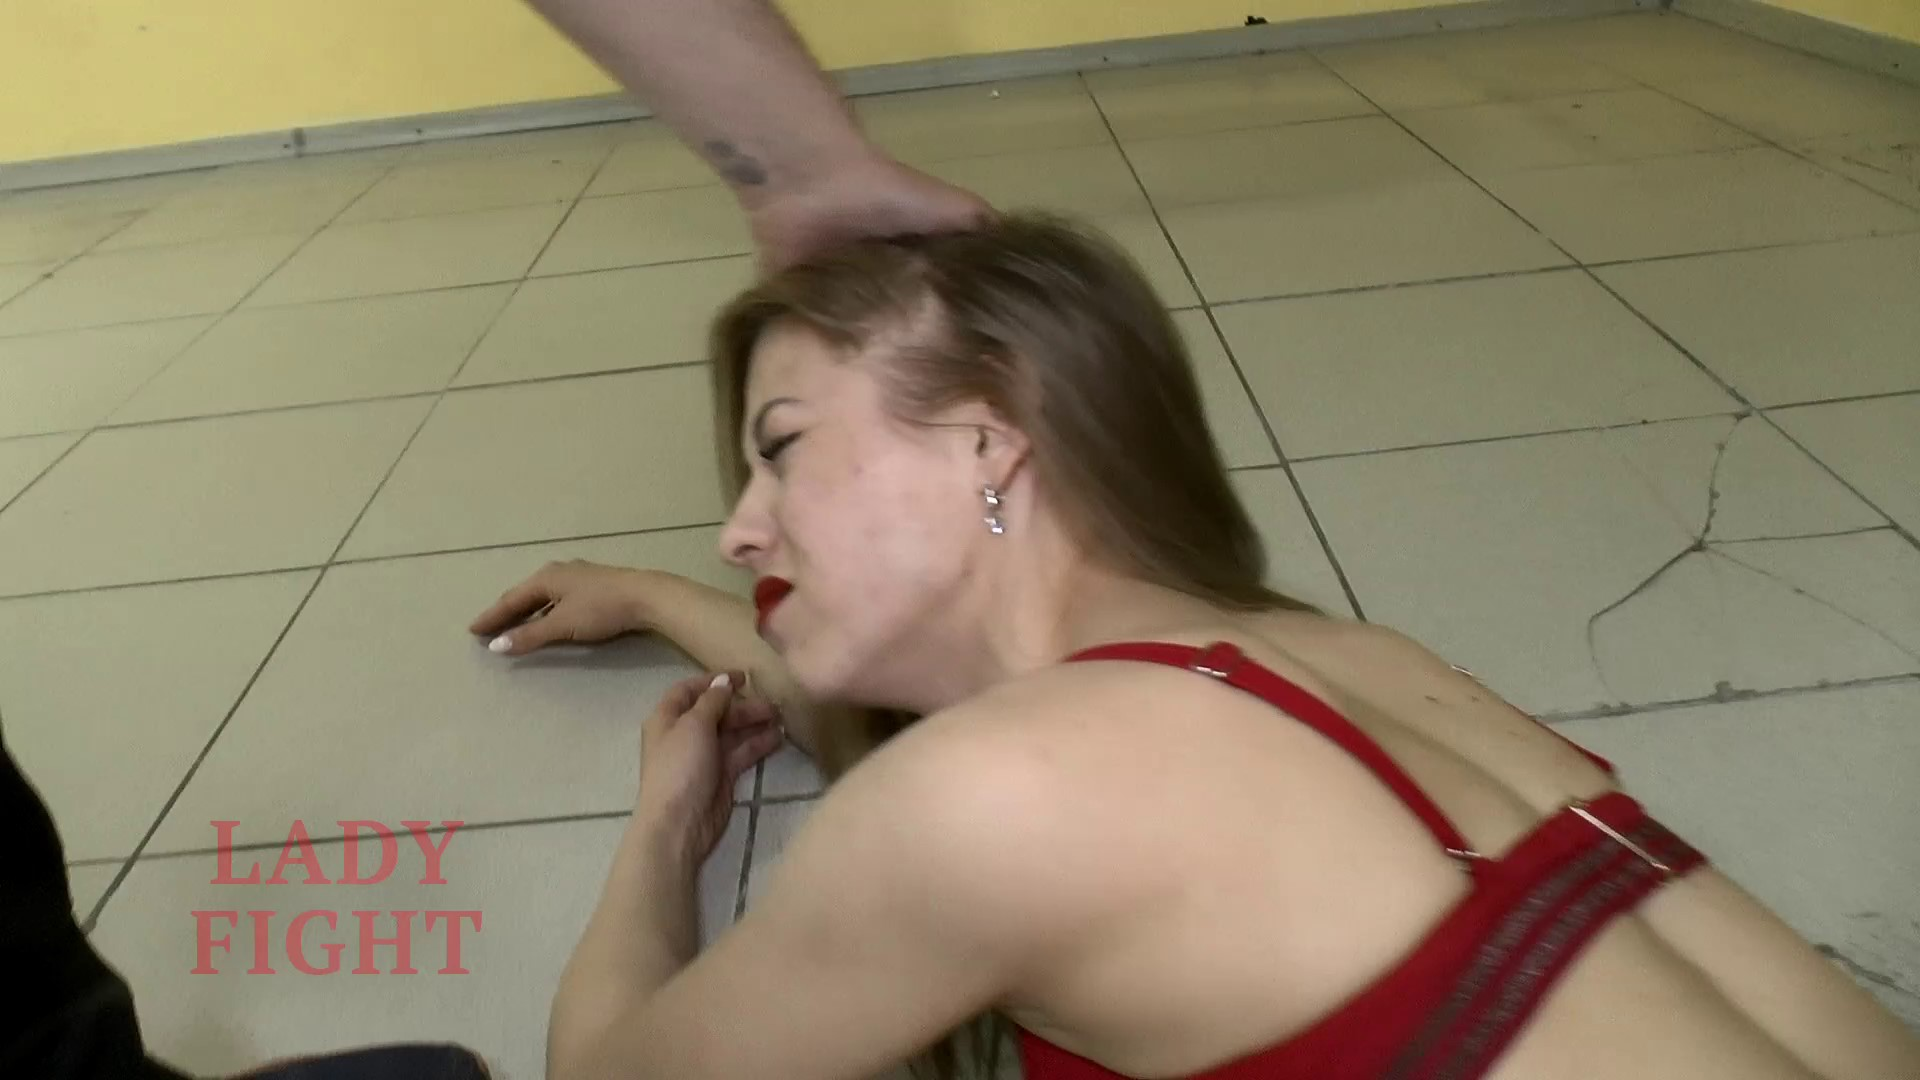 LADYFIGHT-Deadly-Wrestling-For-Lora-101